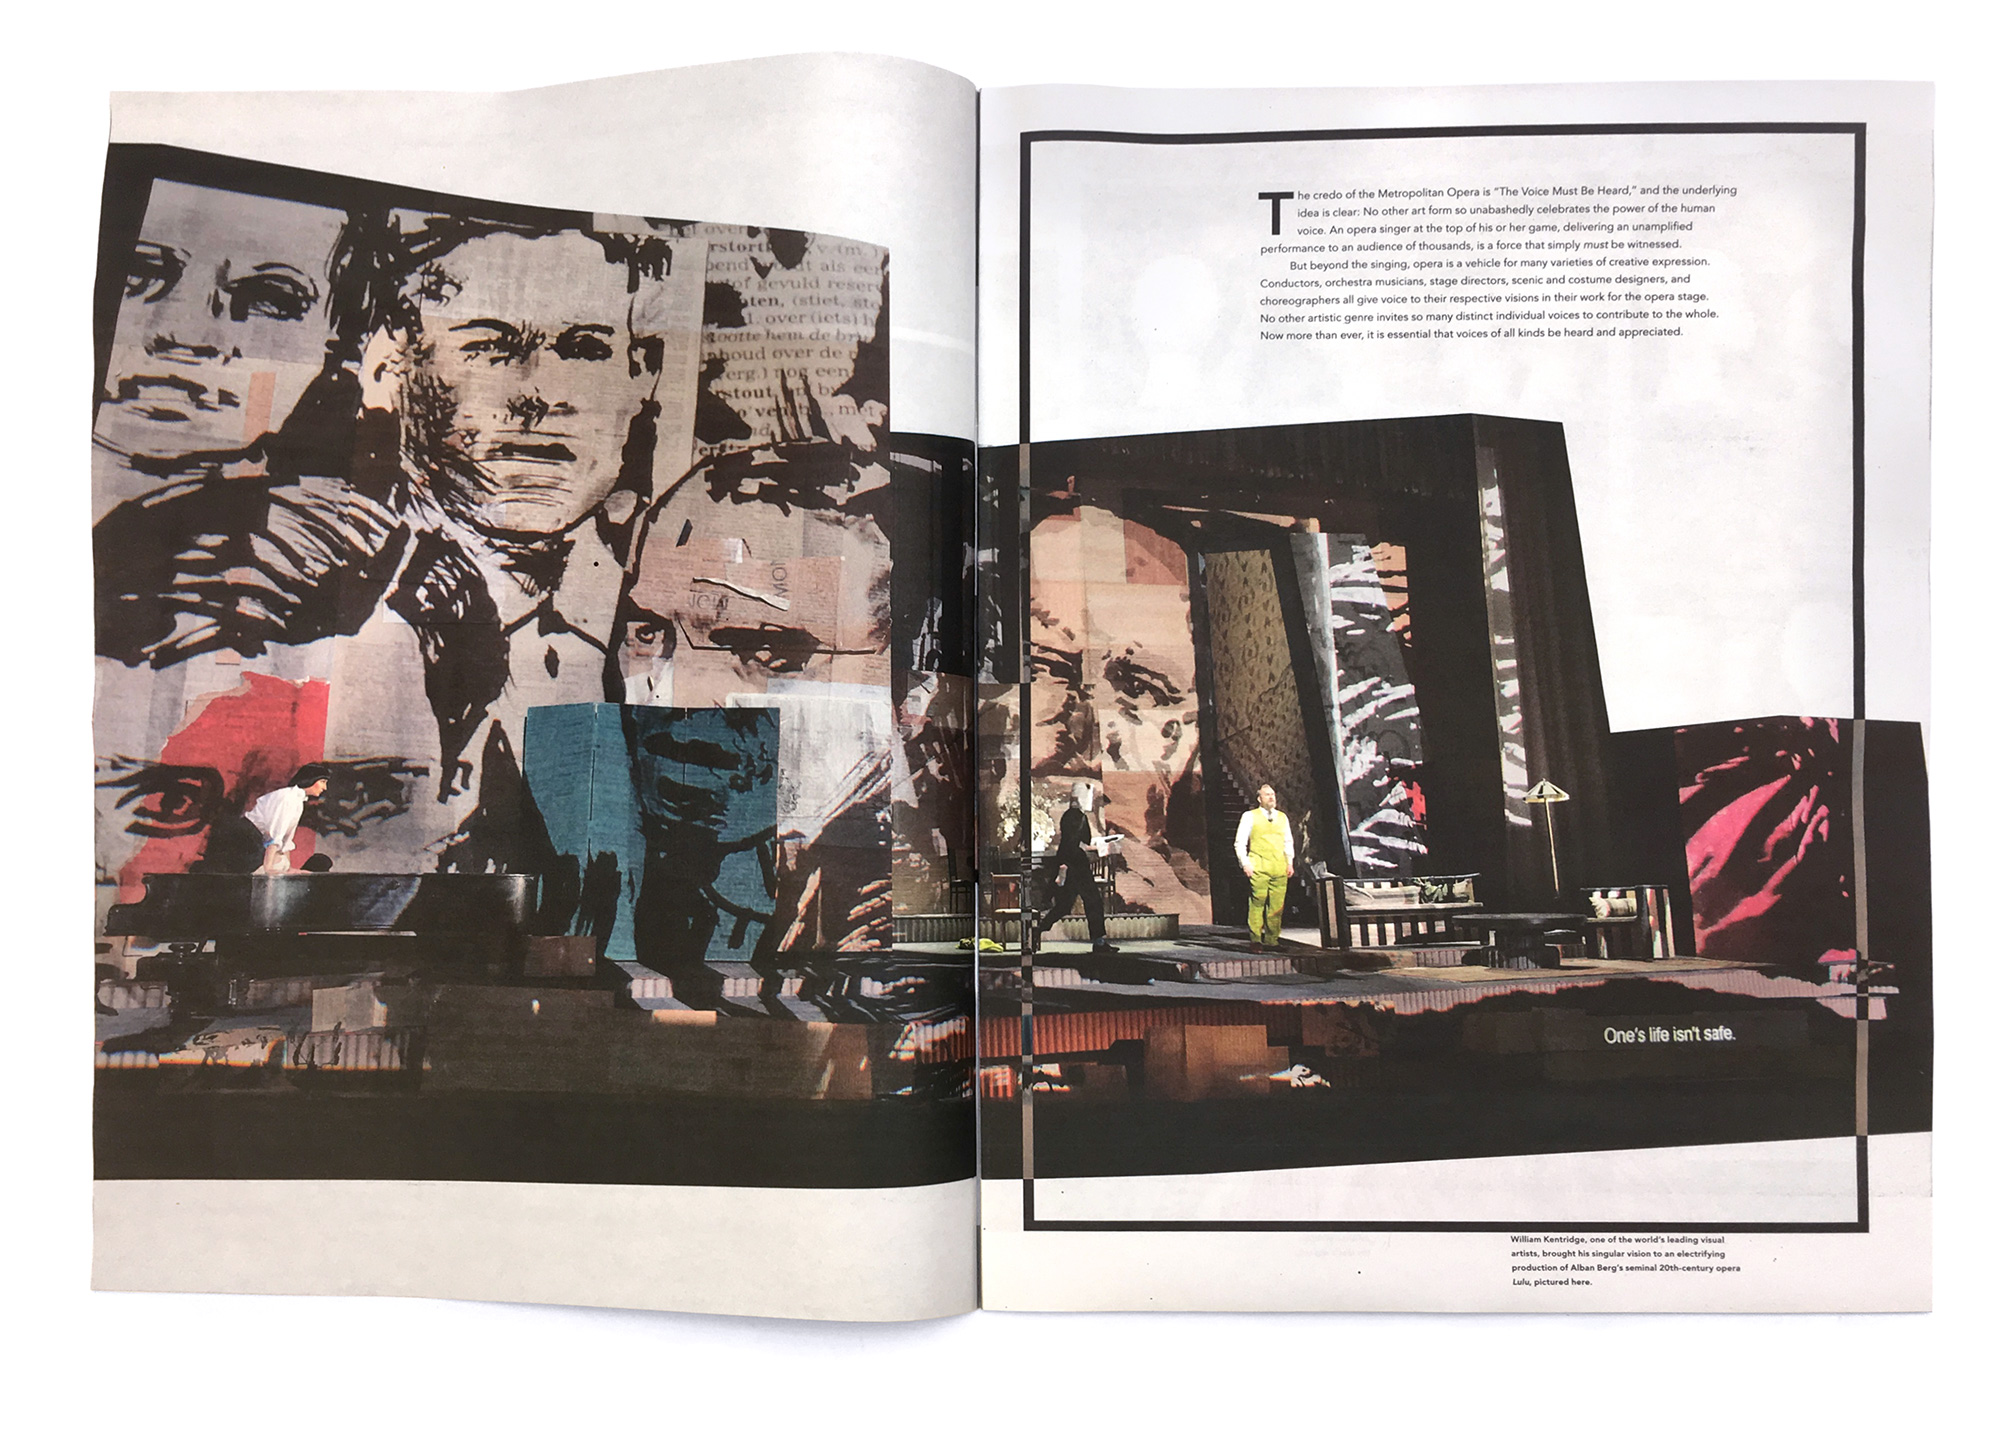 A spread from the recruitment piece for Met Opera showing a man on stage with the William Kentridge set design